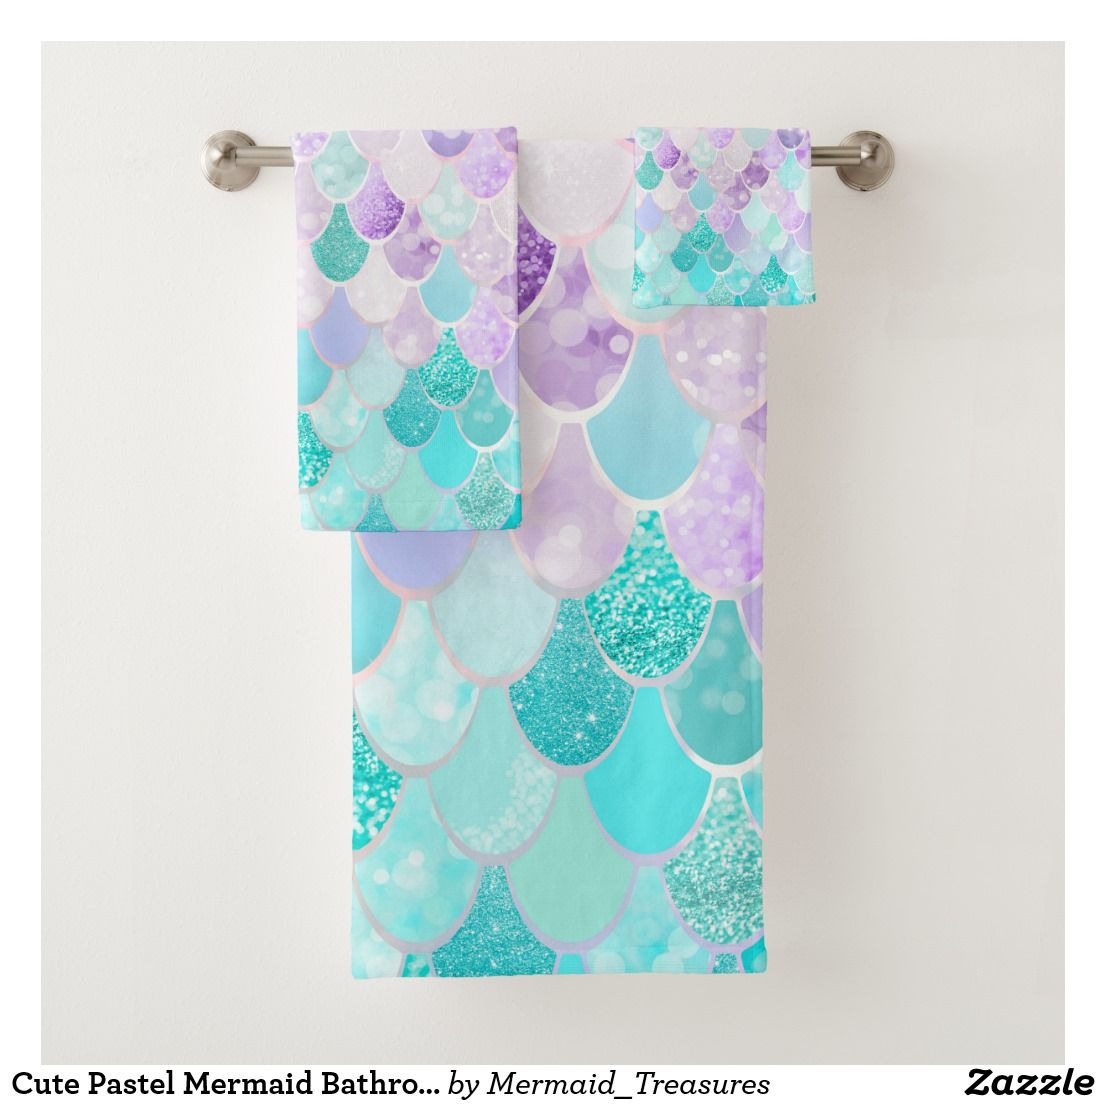 Cute Pastel Mermaid Bathroom Decor Towels | Zazzle.com